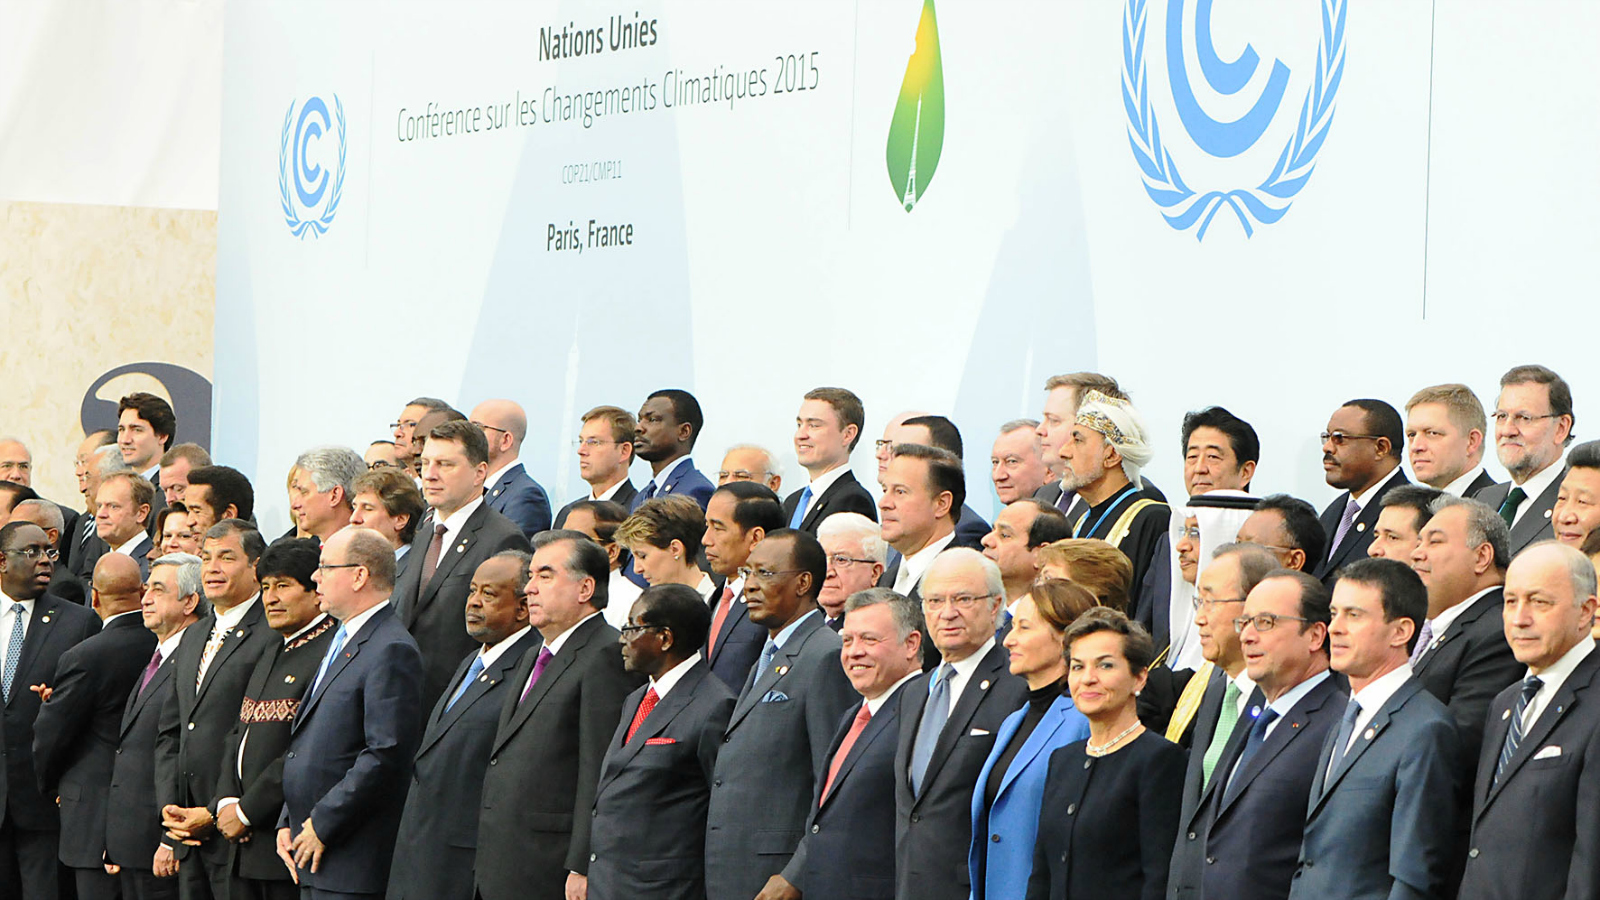 Heads of state at COP21